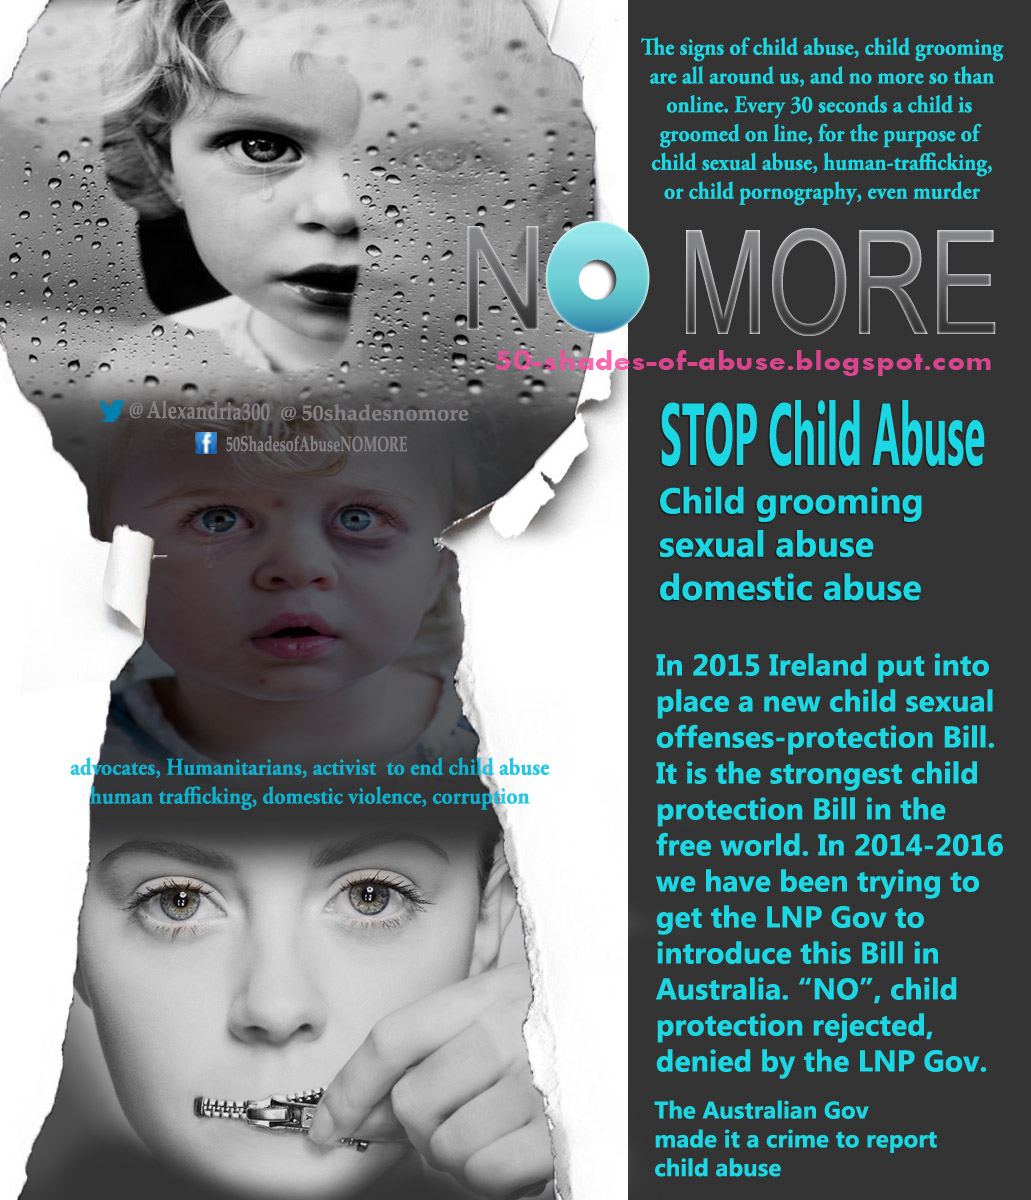 childsafety protecting children reporting child abuse